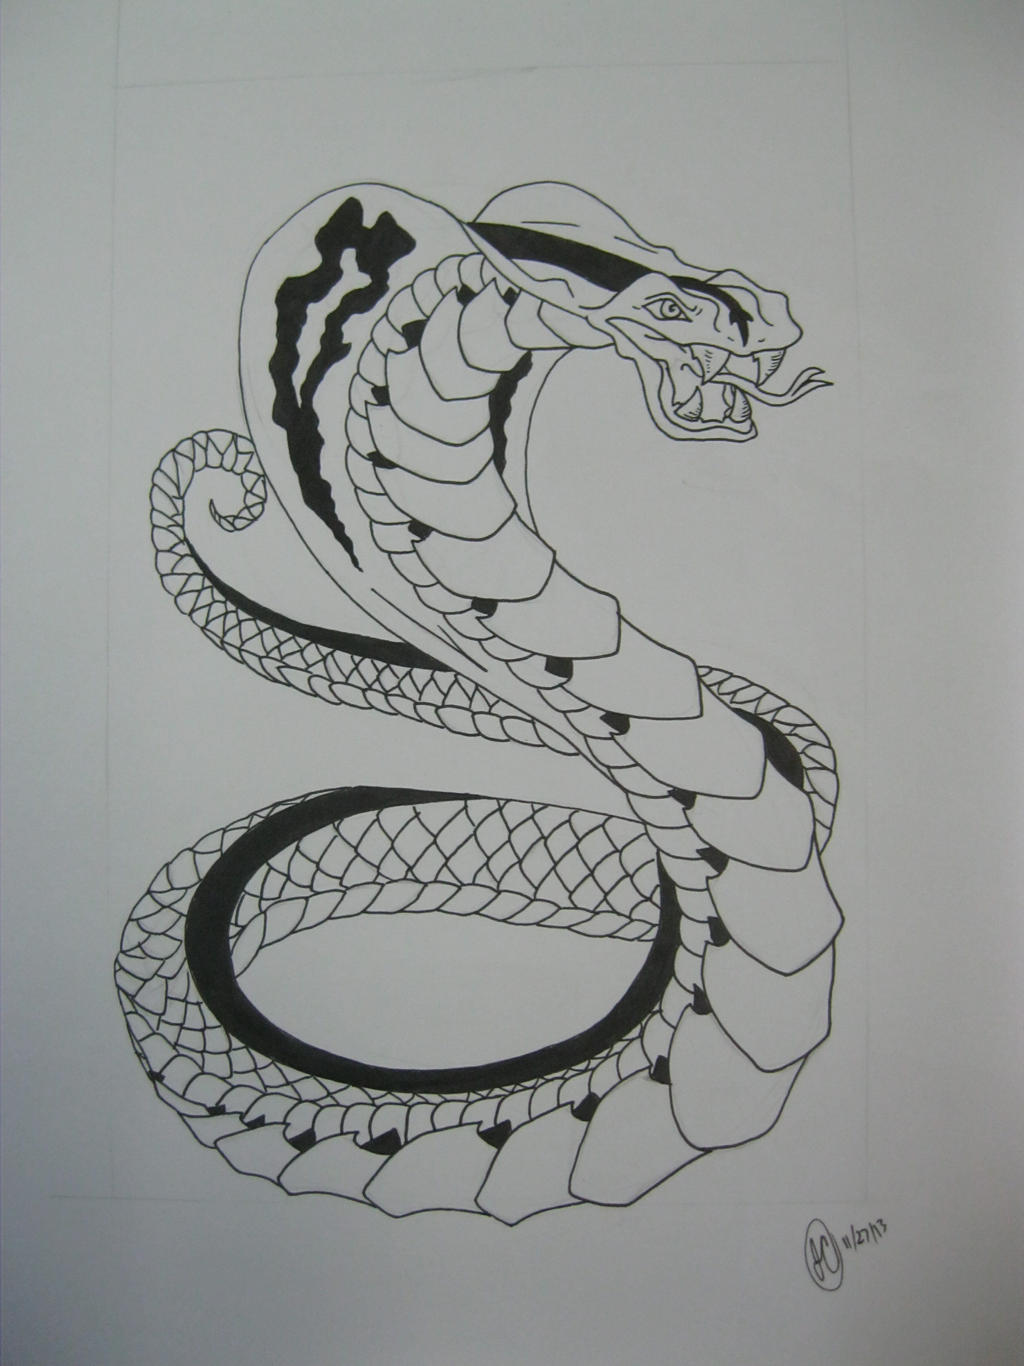 Pin on Body Modifications |Snake Tattoo Sketches